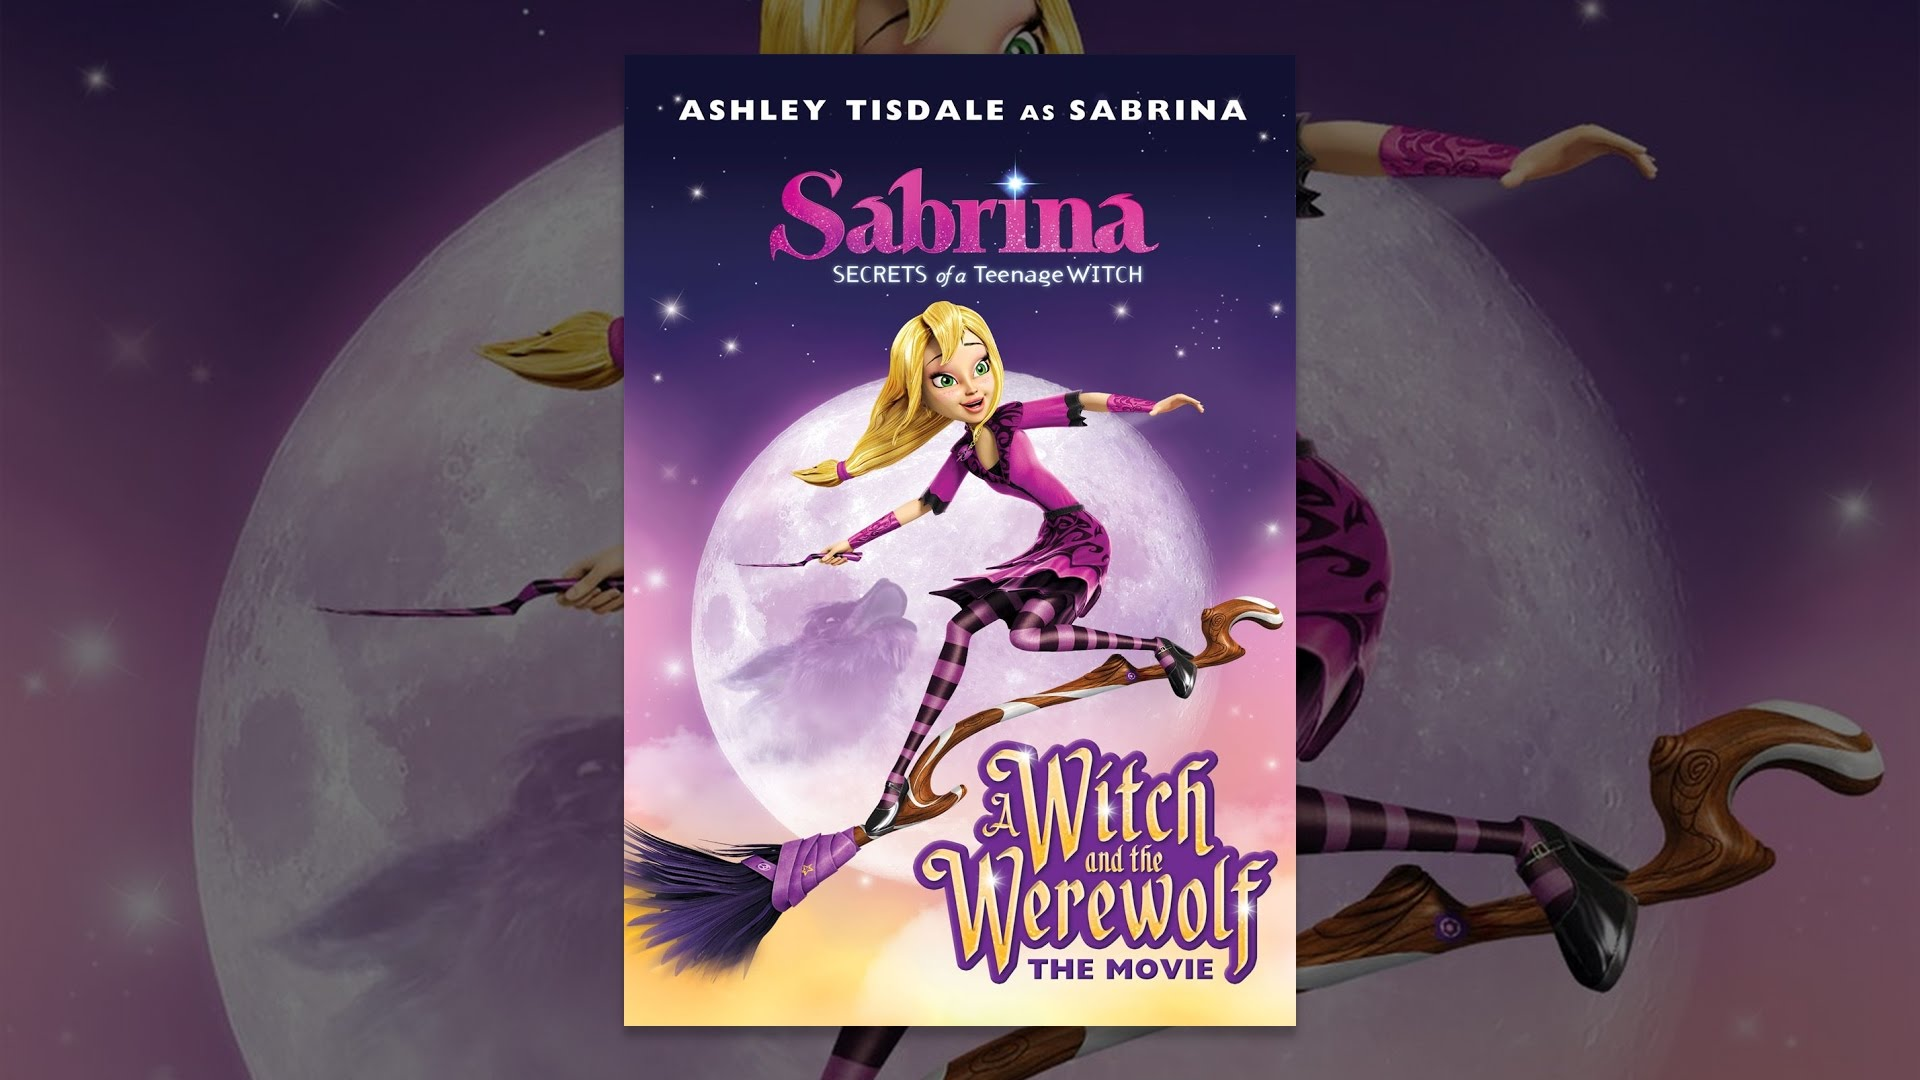 Sabrina: A Witch and The Werewolf